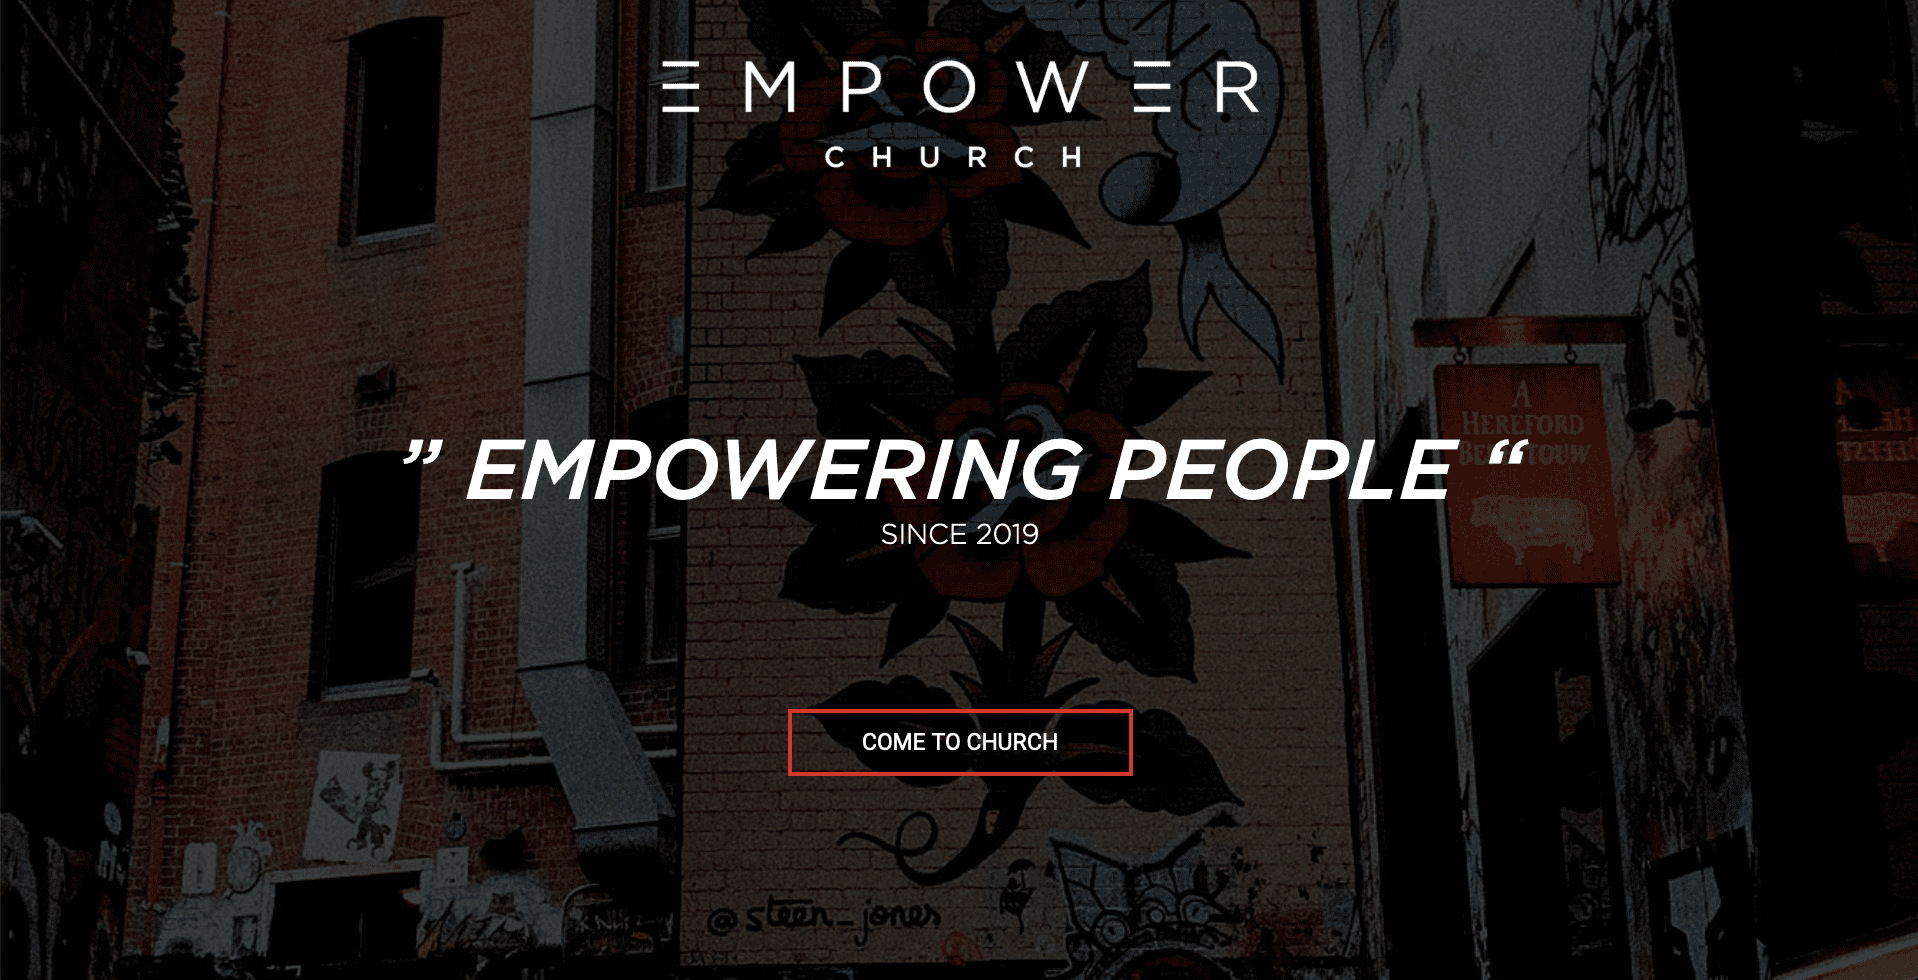 Screenshot of what the Empower Church site looks like on desktop